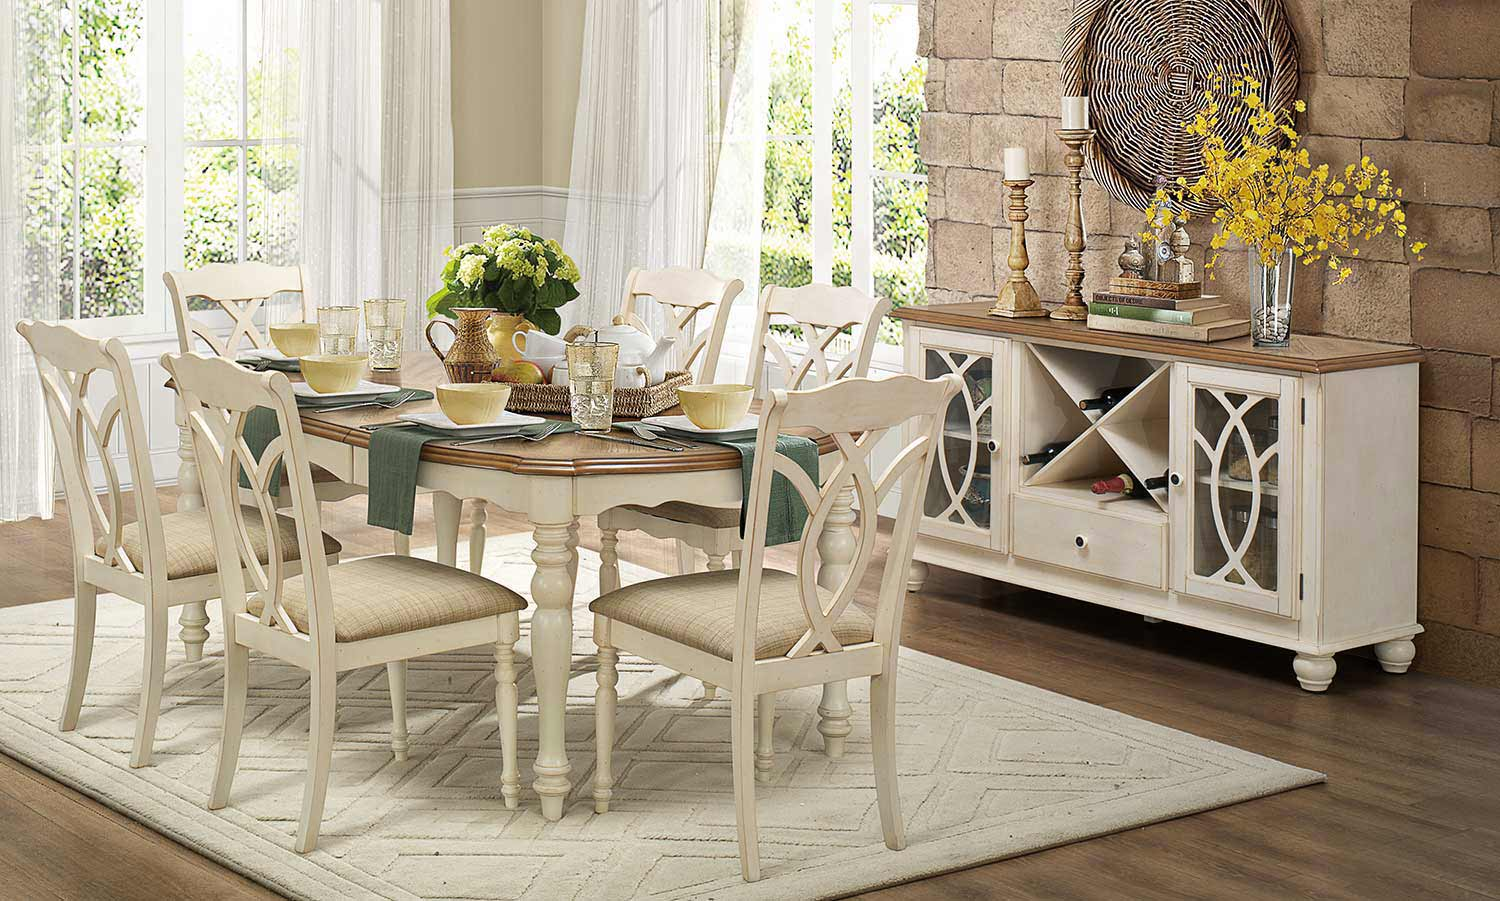 Homelegance azalea dining set antique white 5145 dining for White dining table set